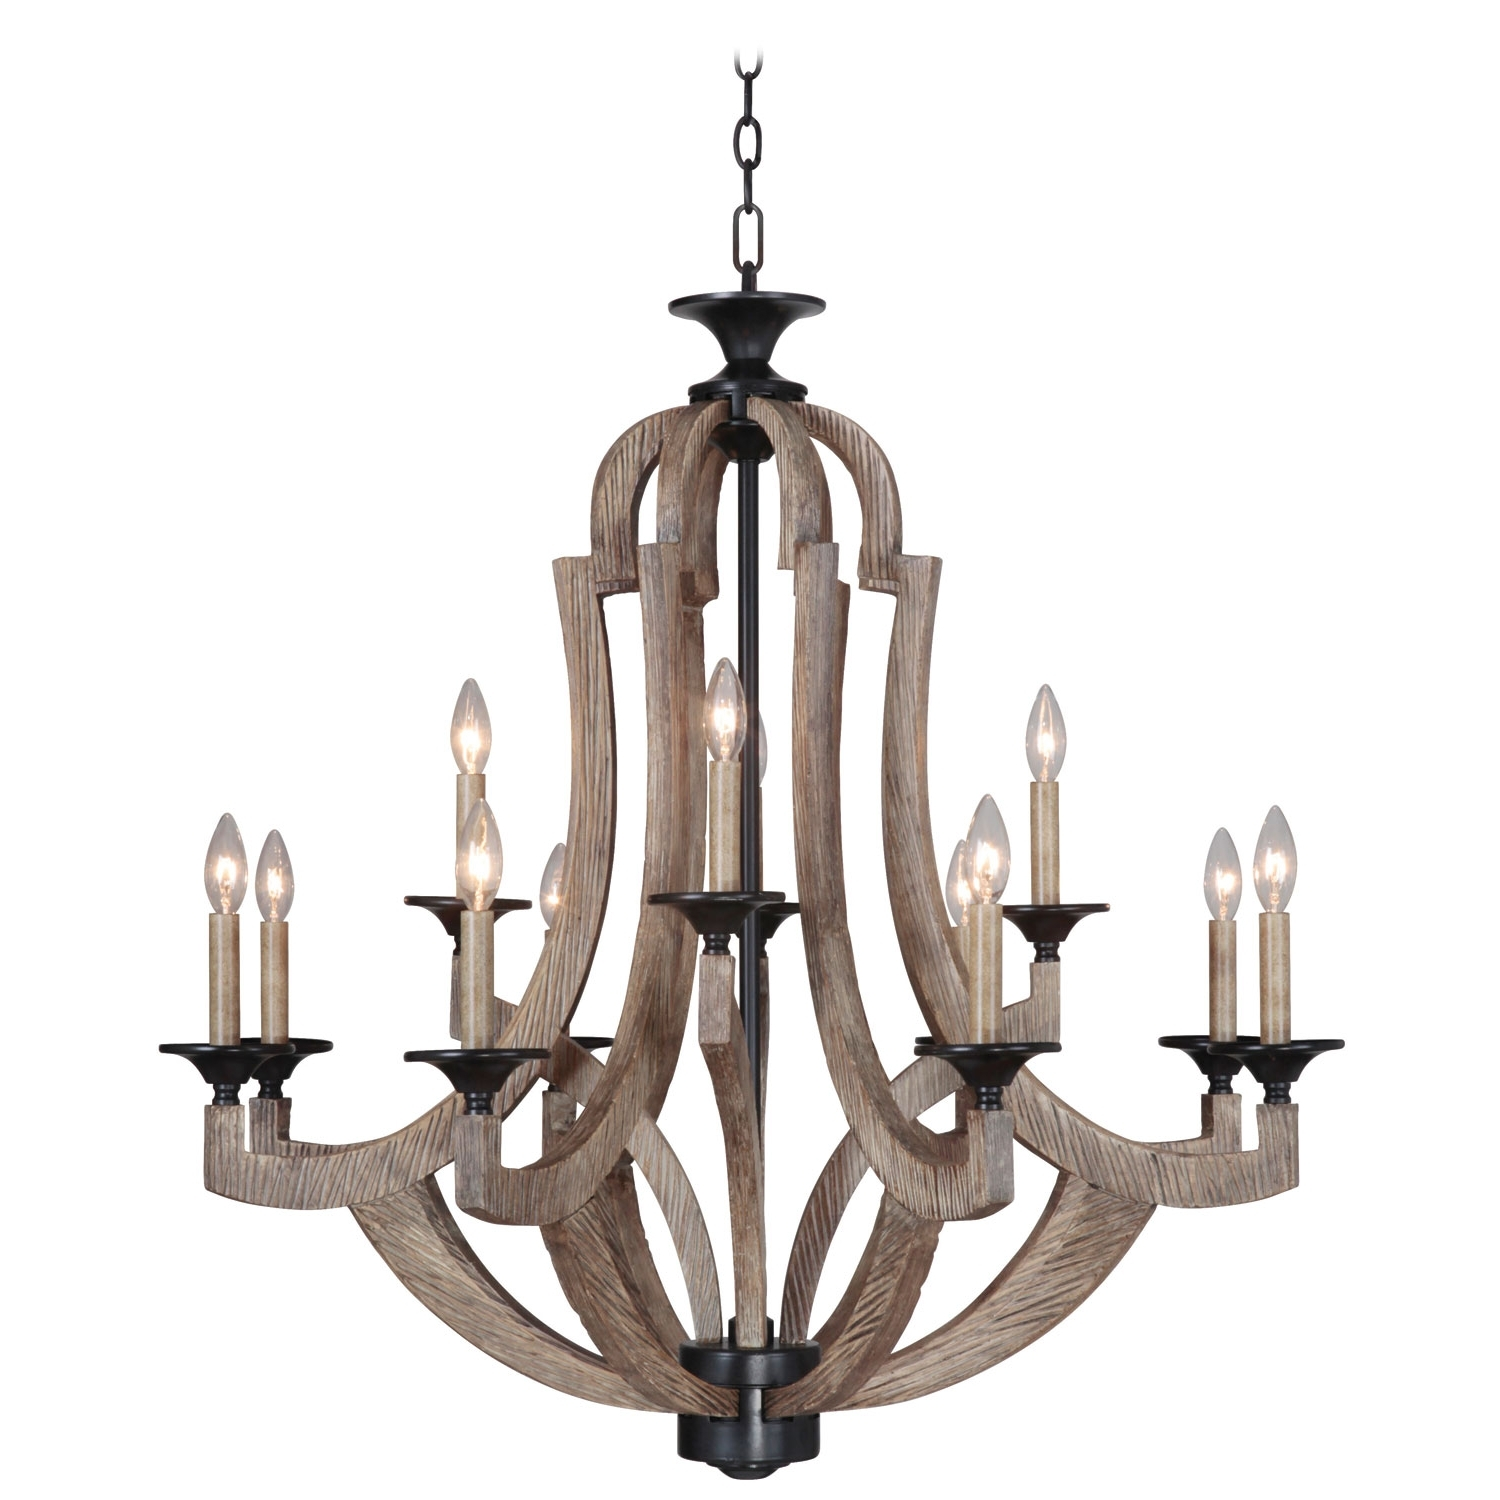 Chandelier Lighting On Sale (View 7 of 20)